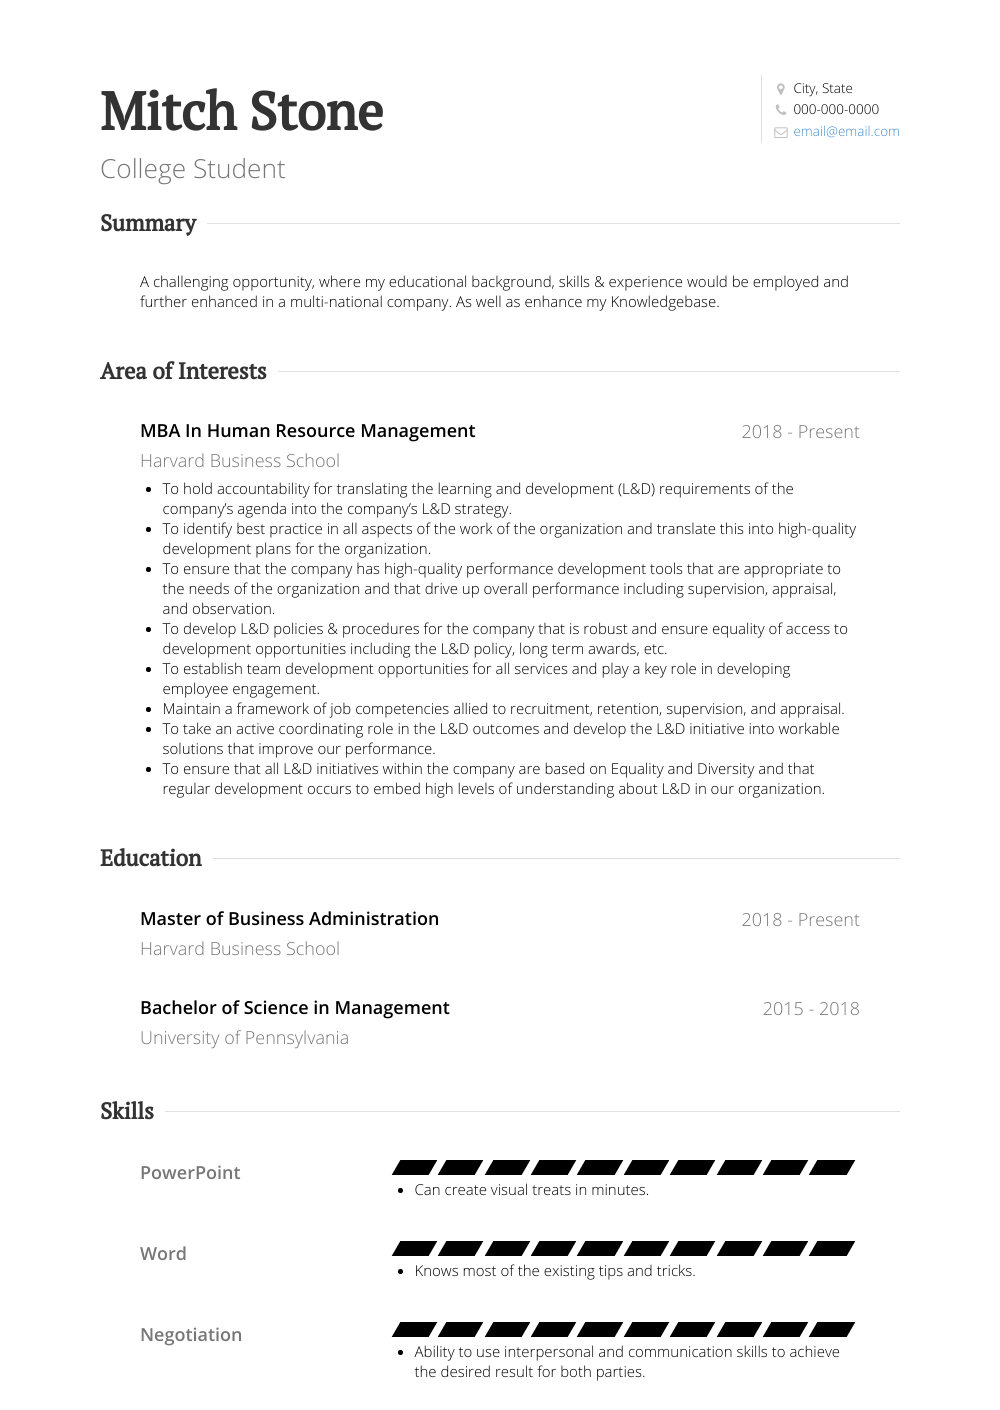 Students Resume Samples College Student Resume Samples Templates Visualcv